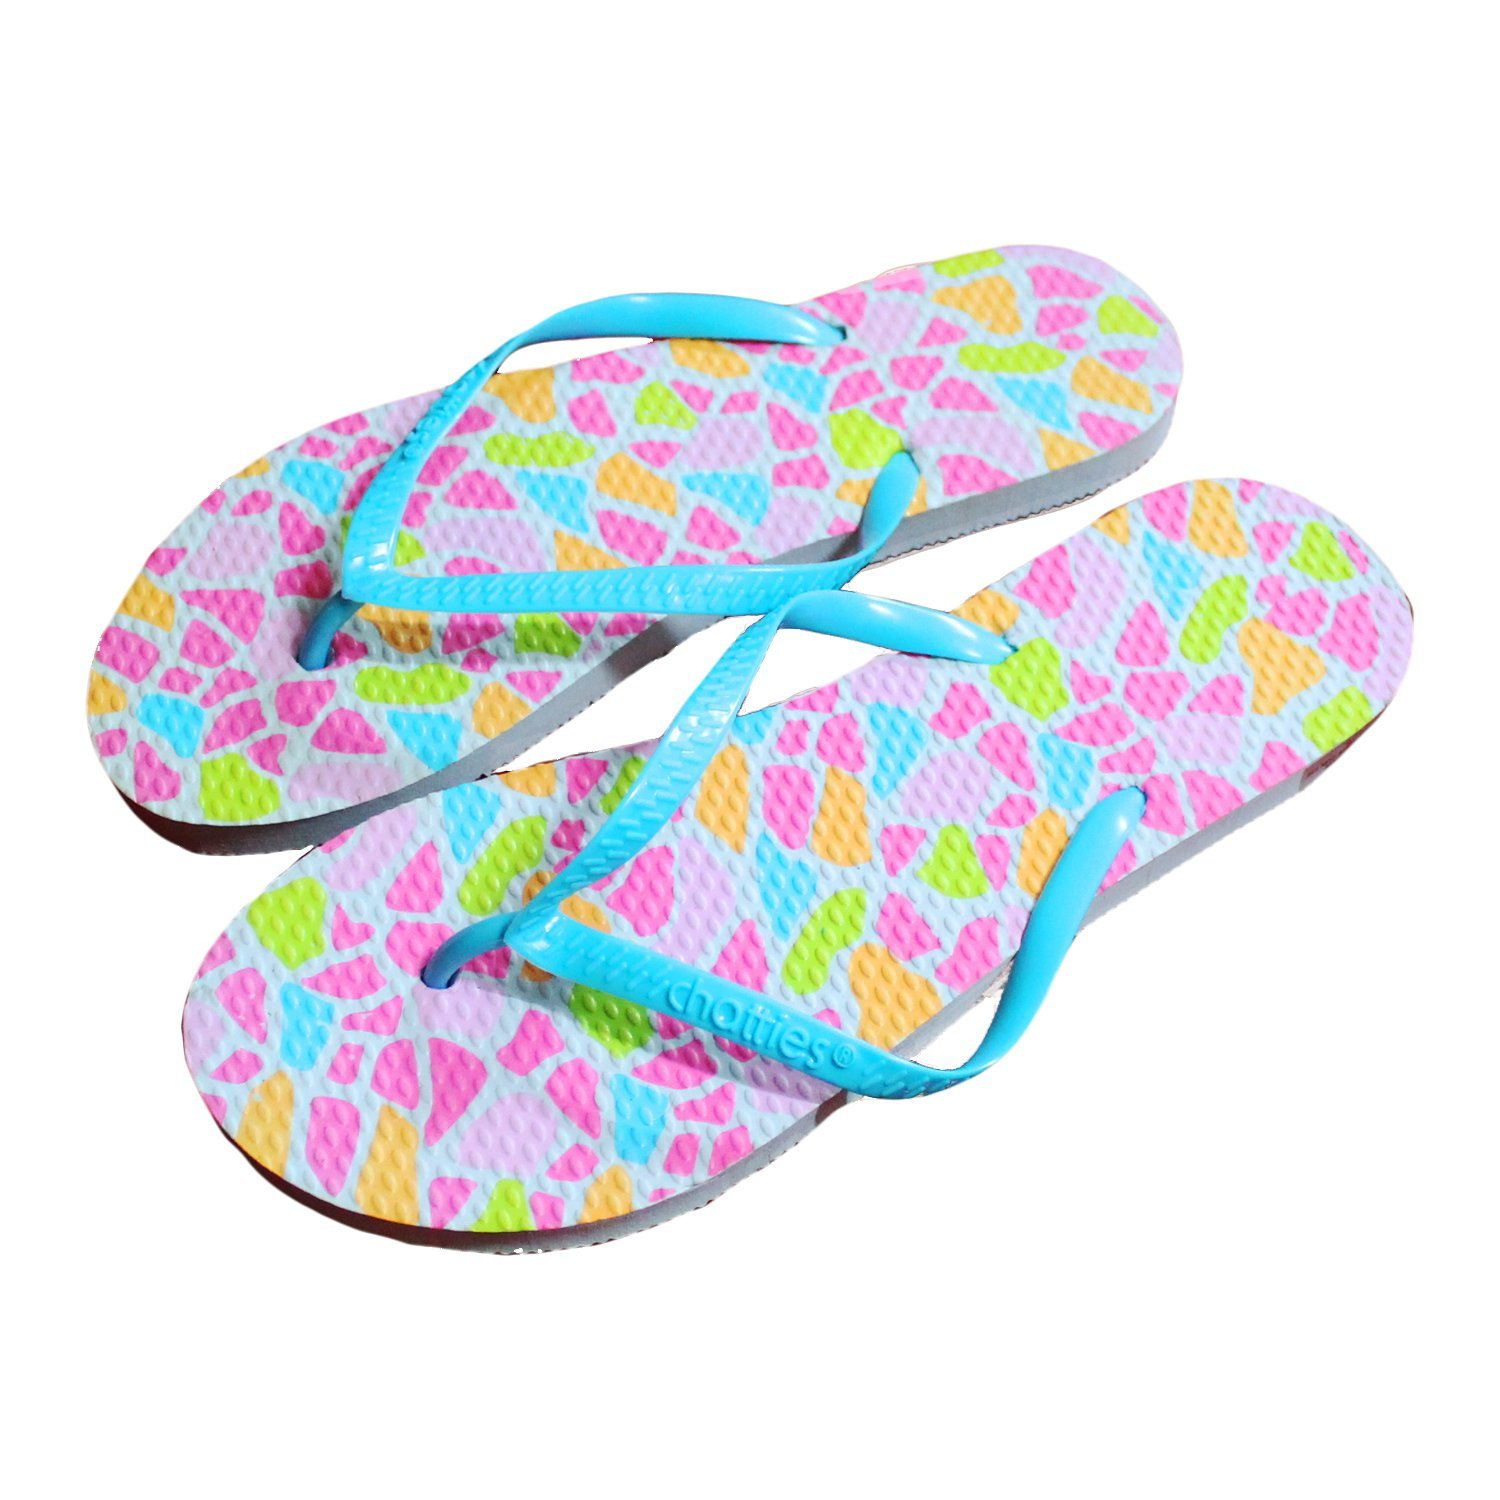 56295d6c18ce8e Get Quotations · Chatties Women s Casual Blue Rubber Flip Flops Slippers